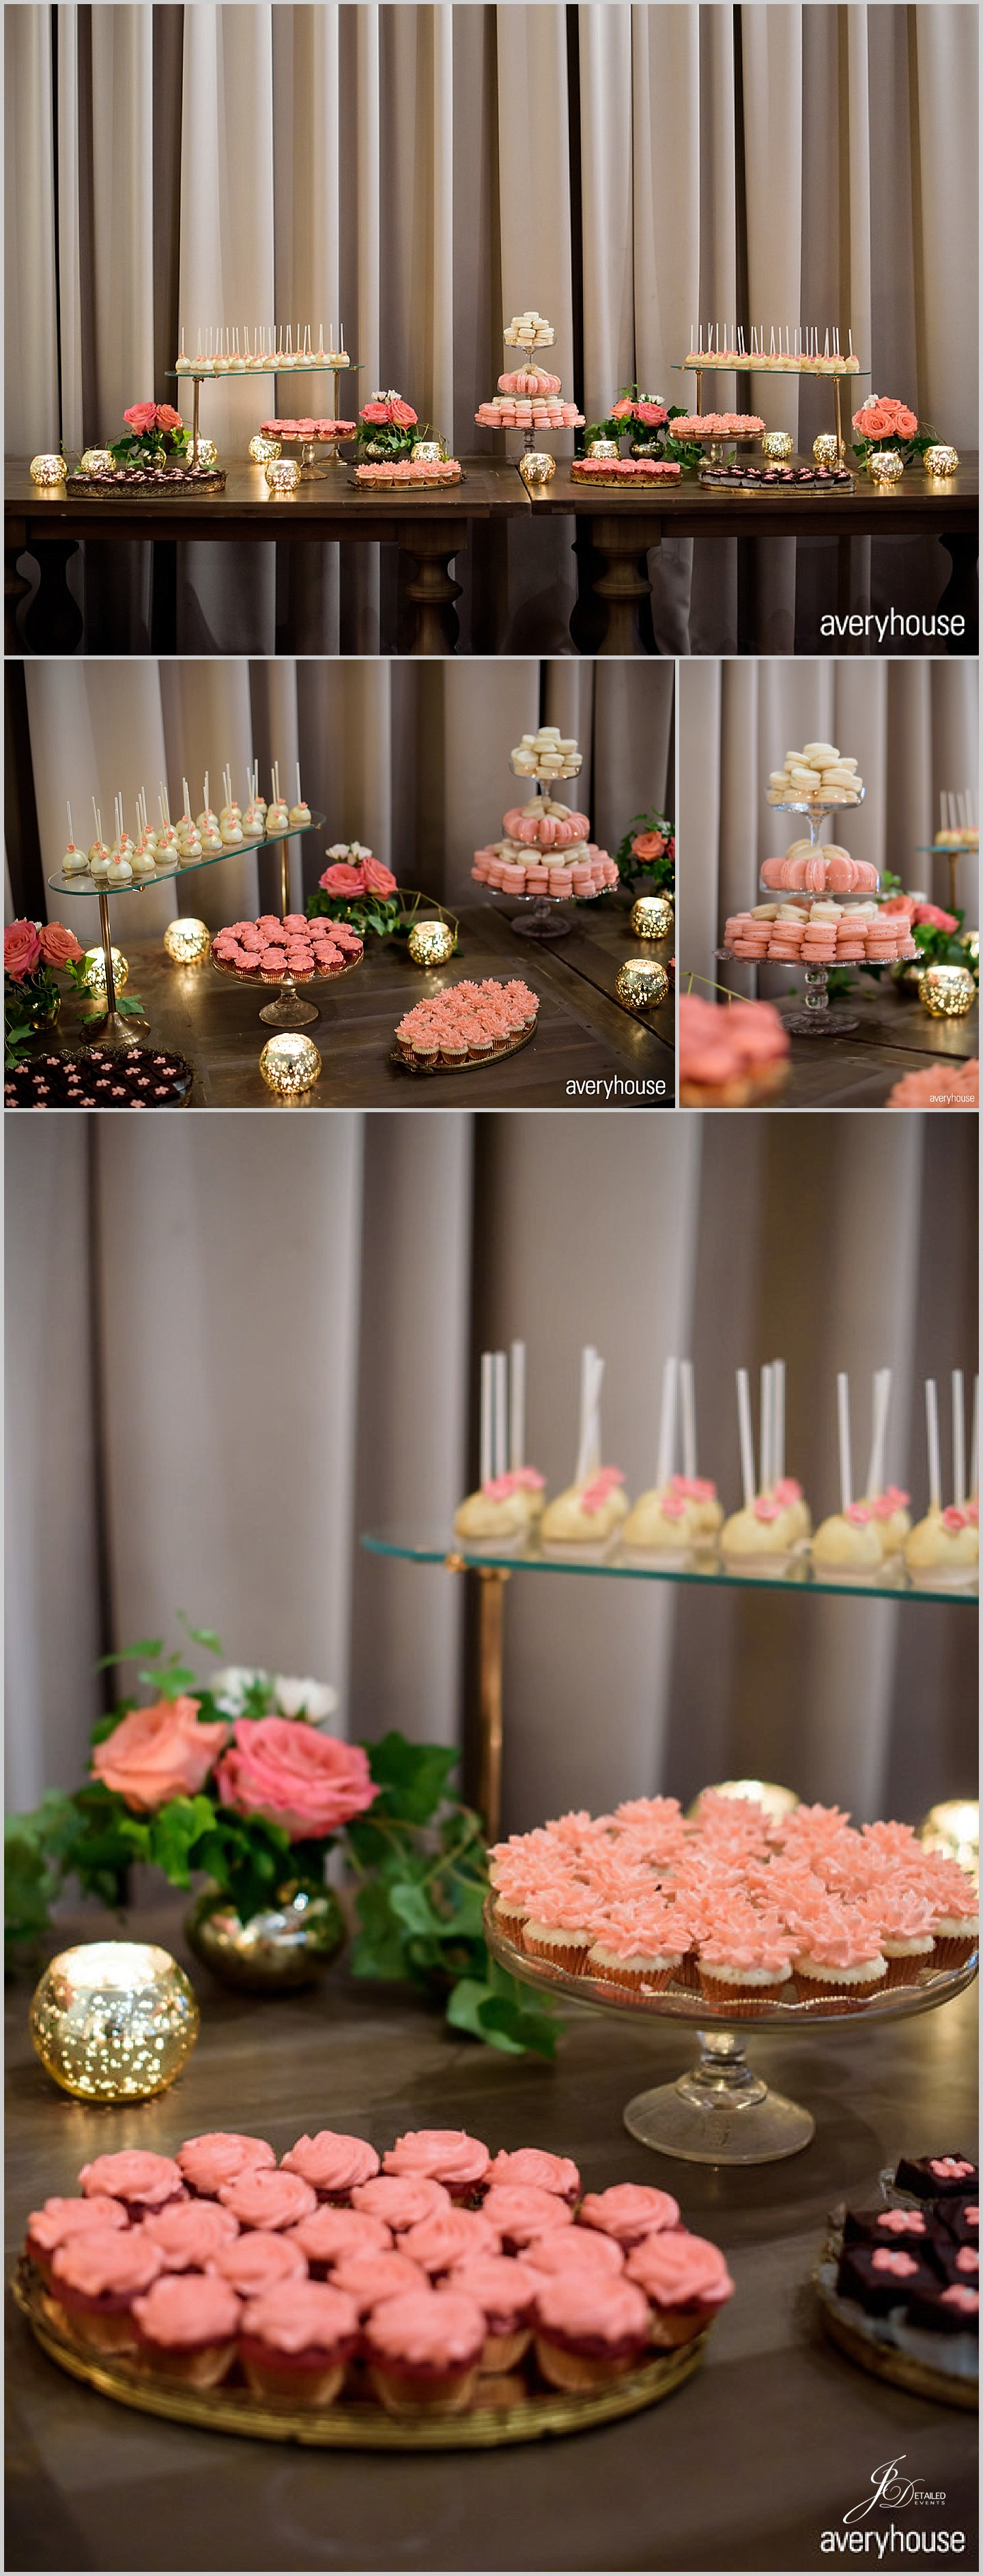 avery-house-wedding-chicago_2222